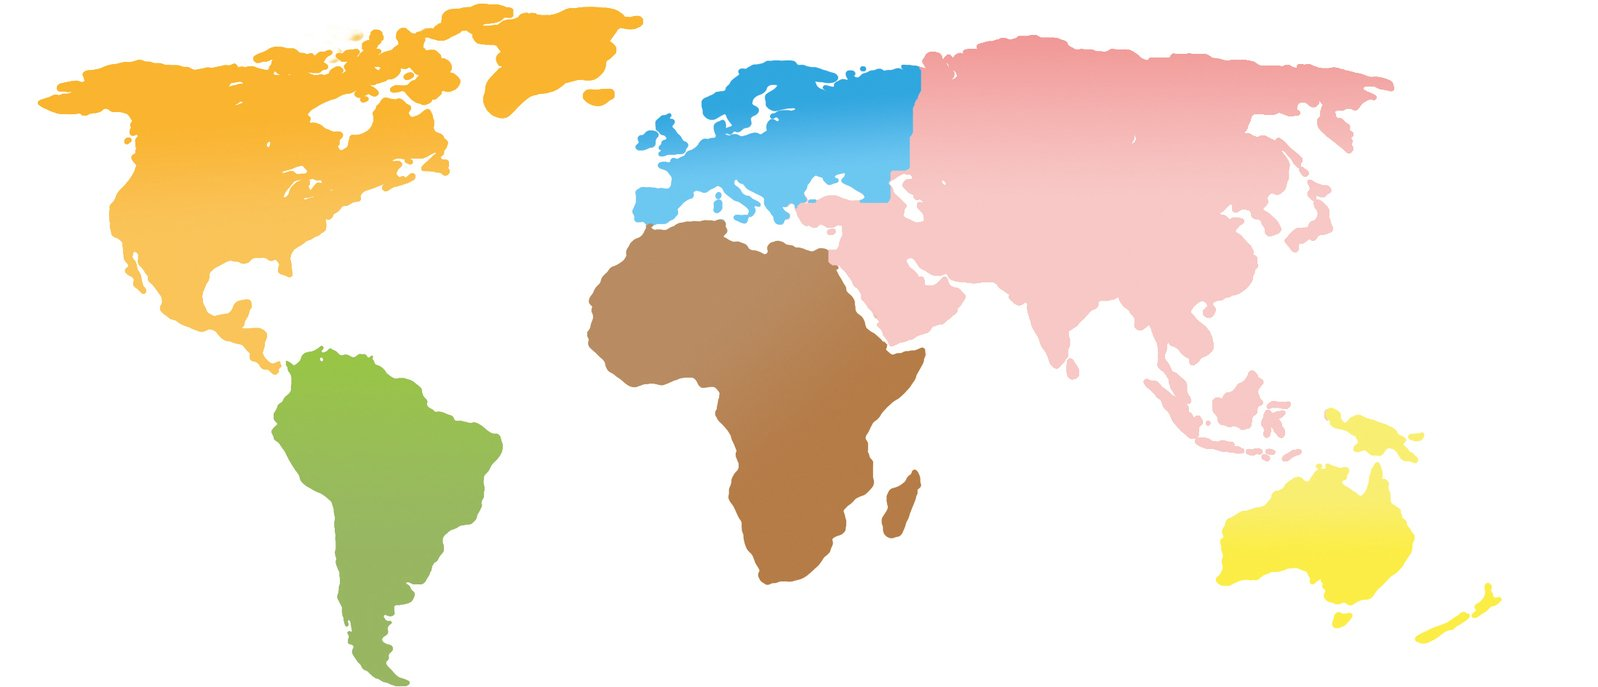 Free continents world map stock photo freeimages continents world map gumiabroncs Images